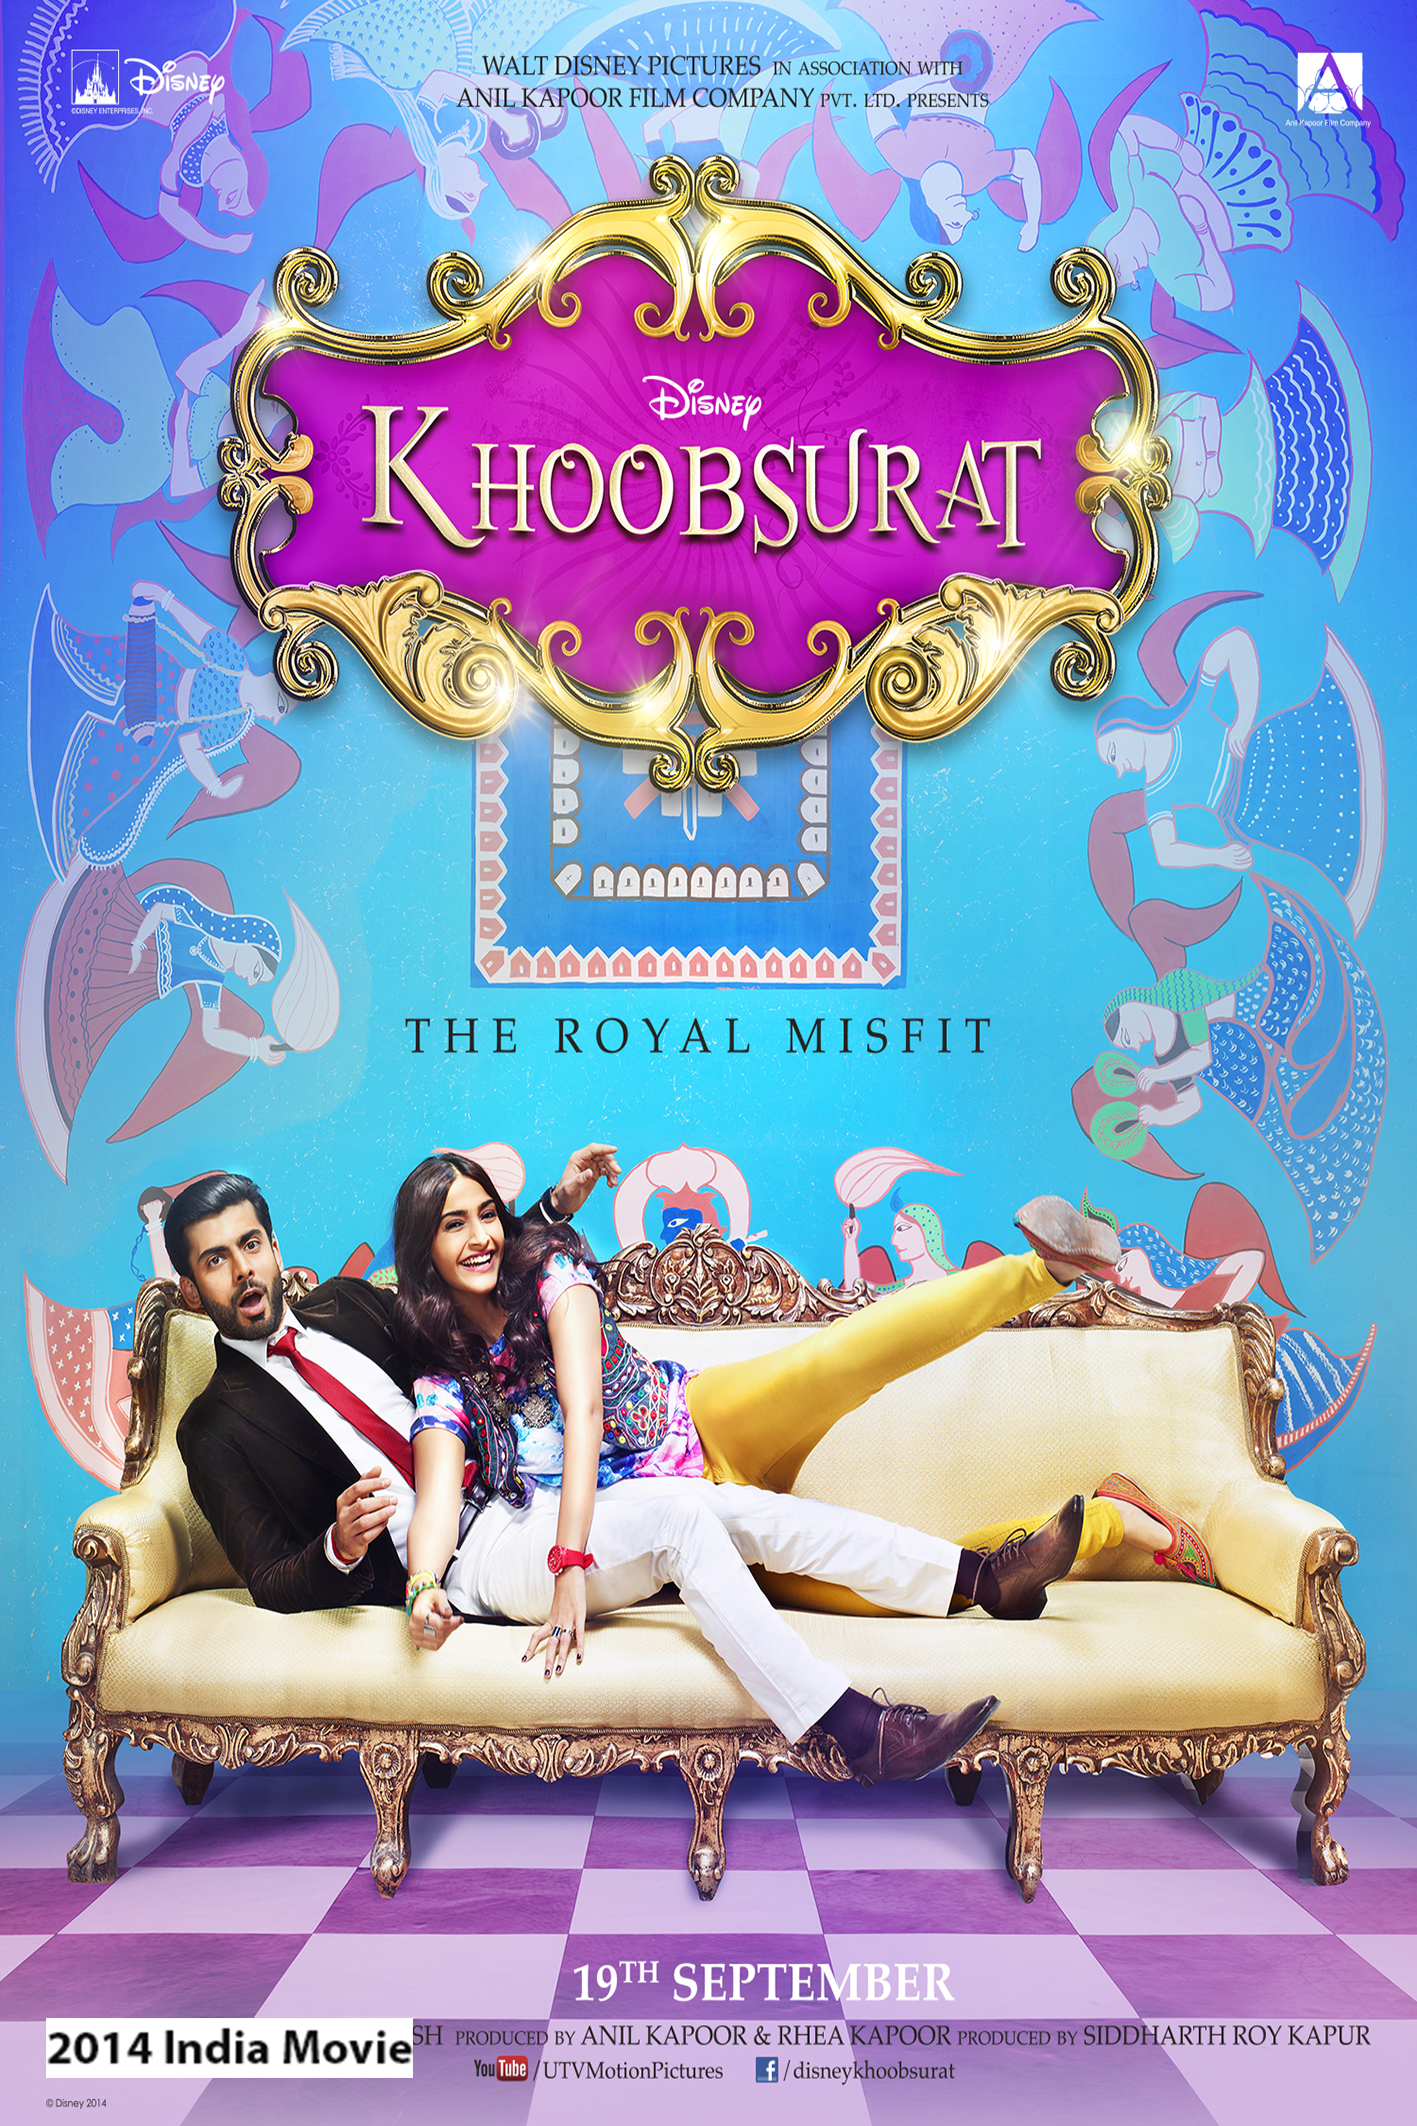 Khoobsurat [2014 India Movie] Hindi Comedy, Romance